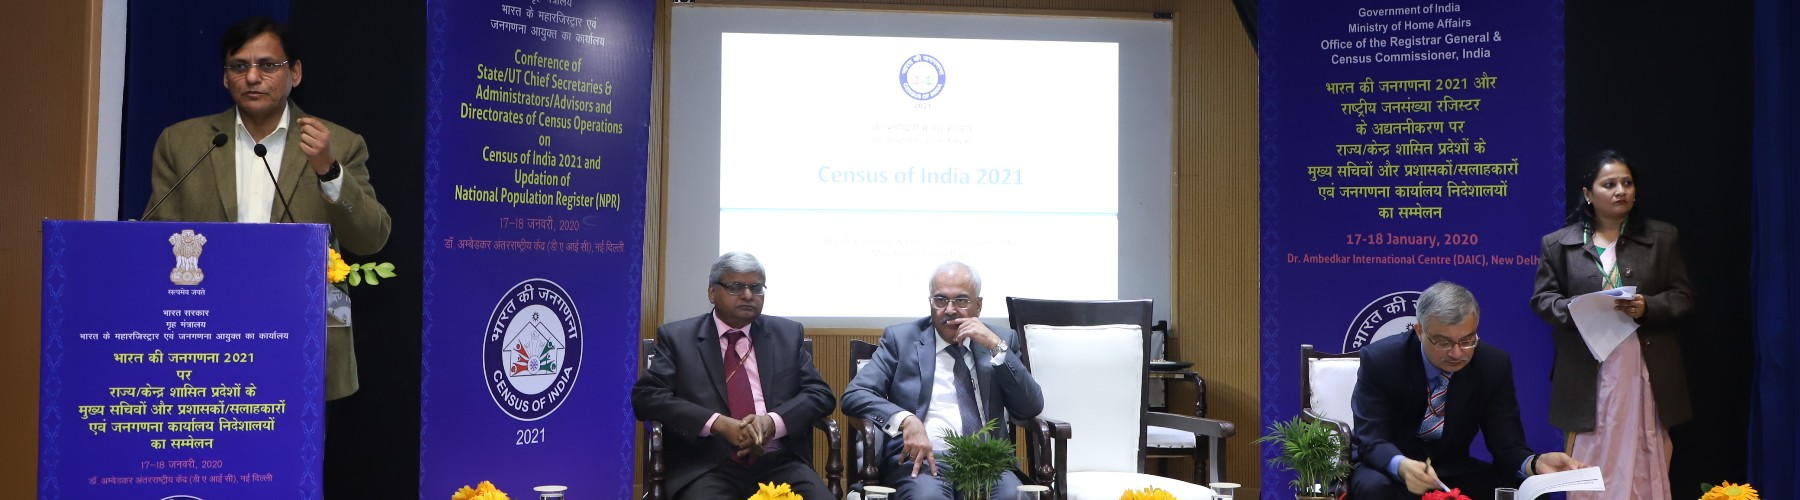 Union Minister of State for Home Affairs, Shri Nityanand Rai  inaugurated the  Conference of the State/UT Chief Secretaries and Administrator of Census 2021 and updating of NPR, held in New Delhi, on January 17, 2020